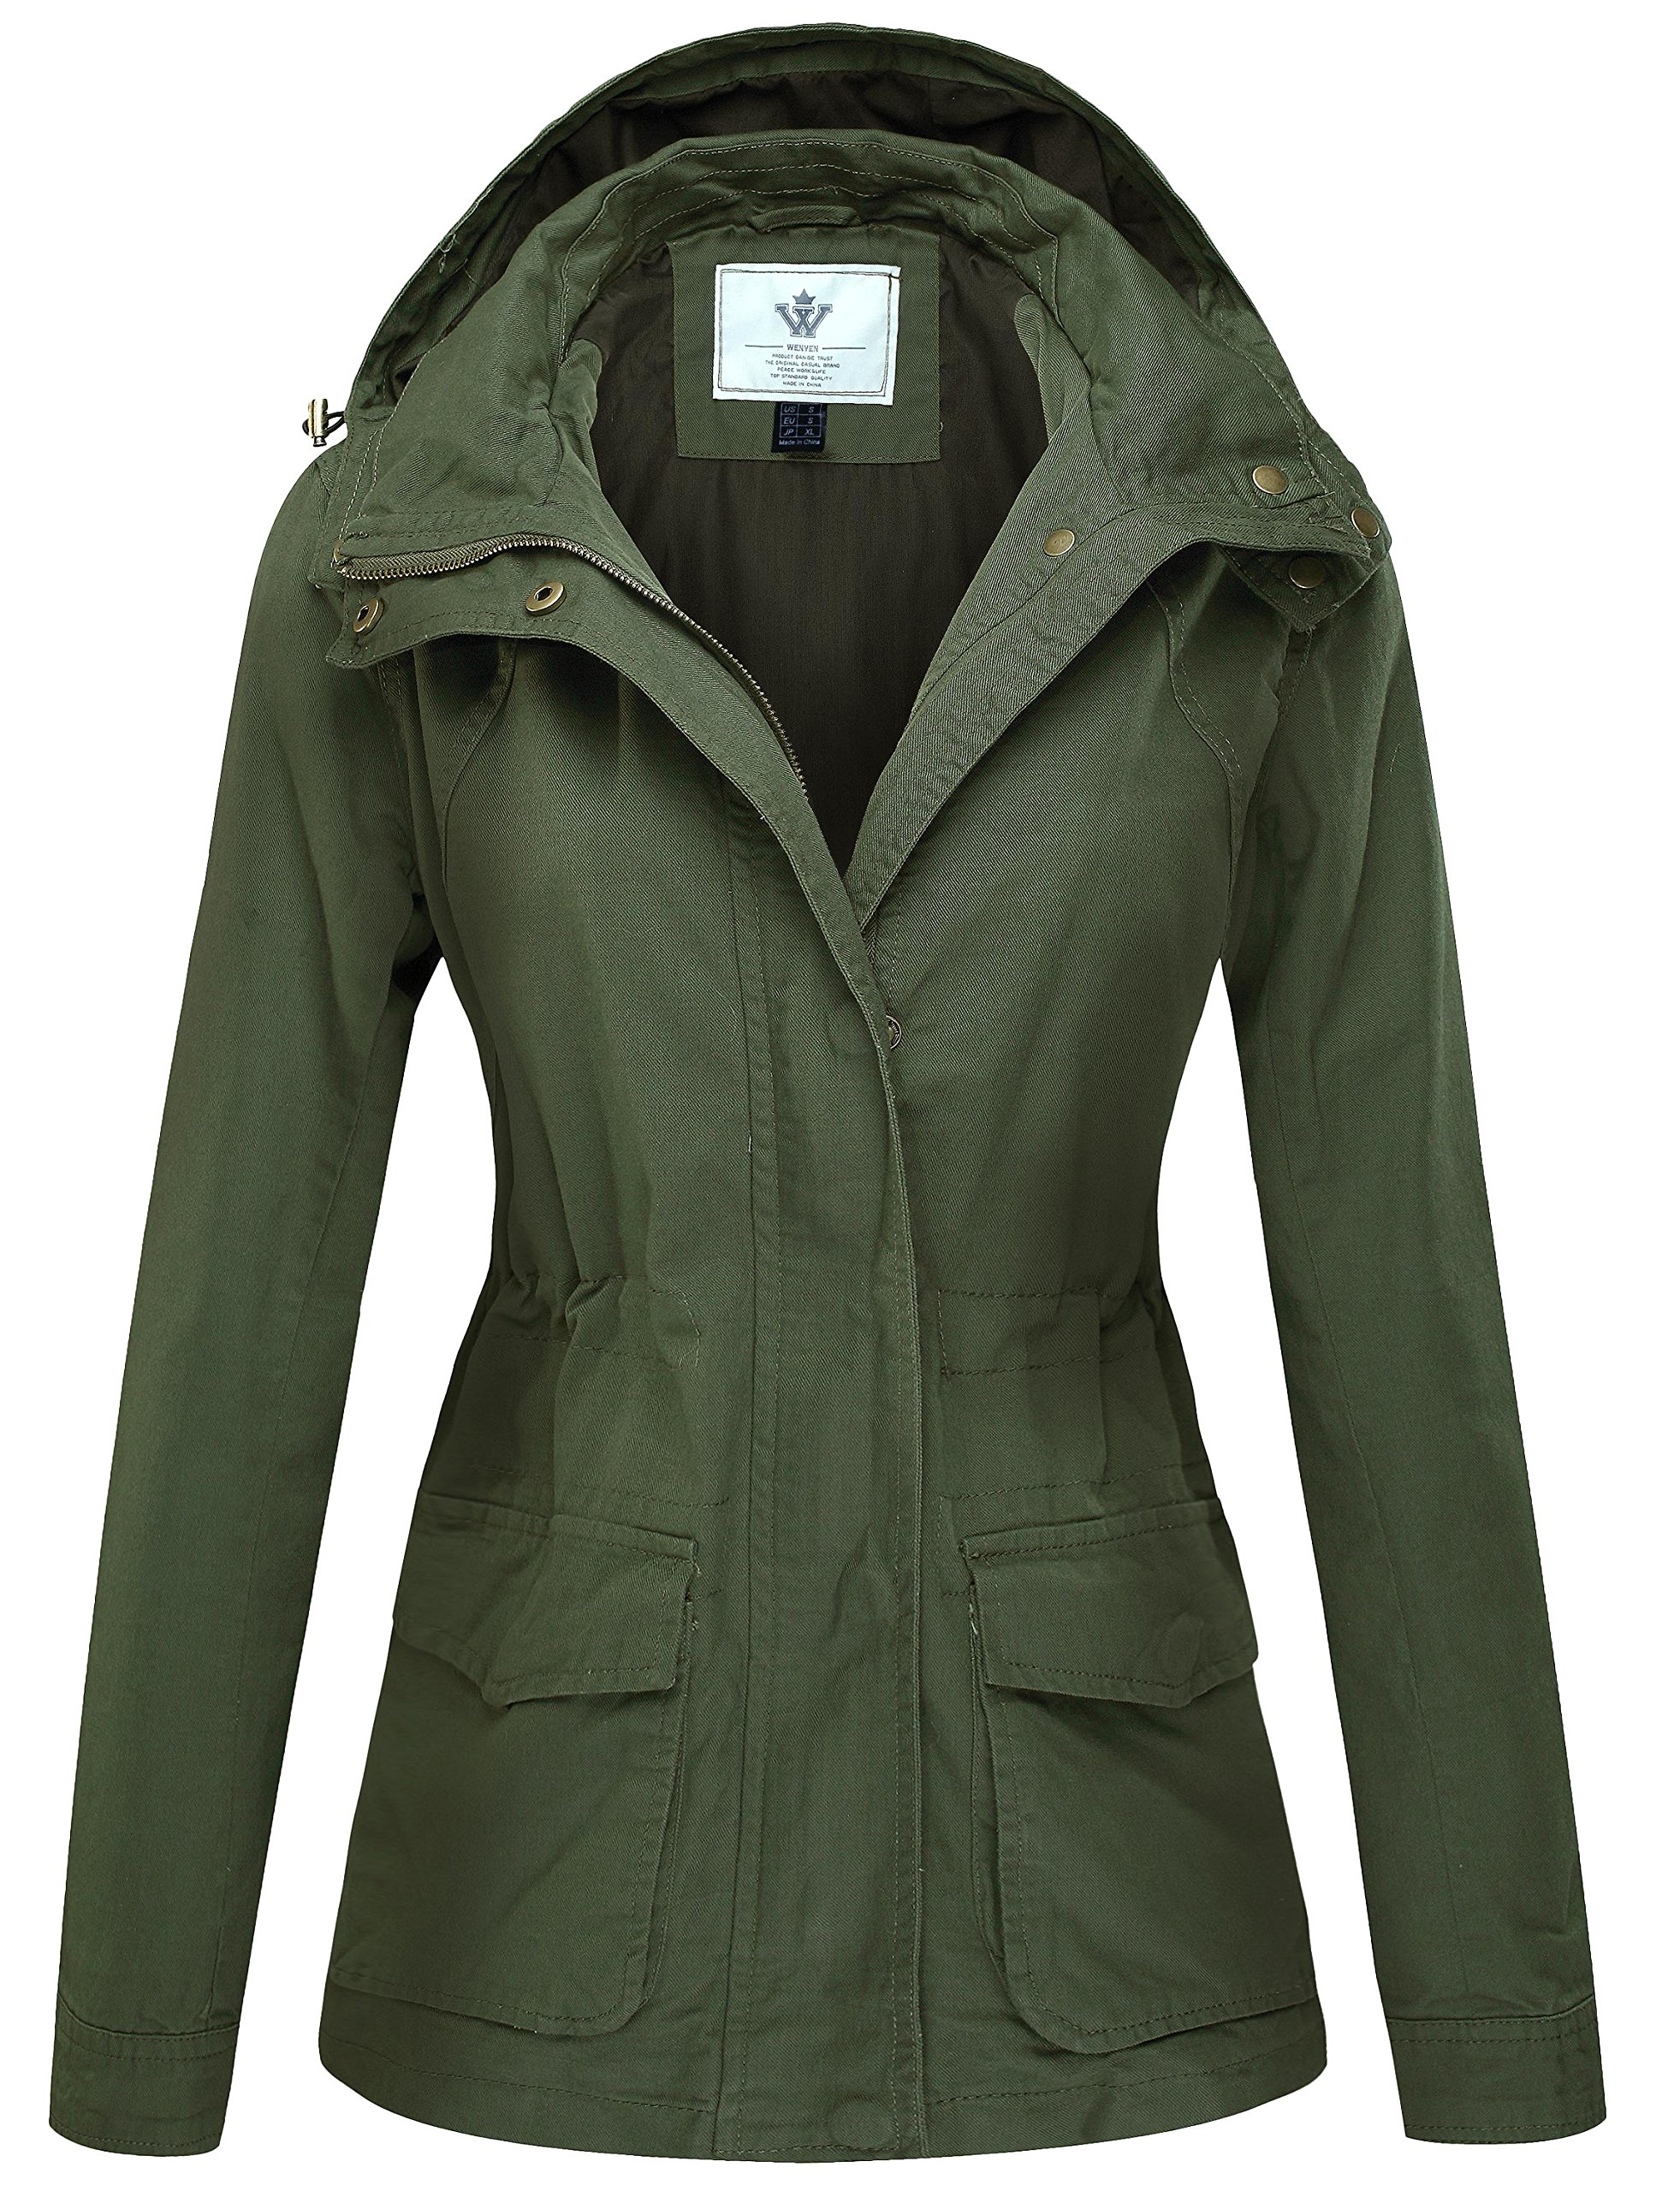 WenVen Women's Versatile Militray Zipper Slim Fit Jackets with Drawstring Hoodie(Army Green,XXX-Large)